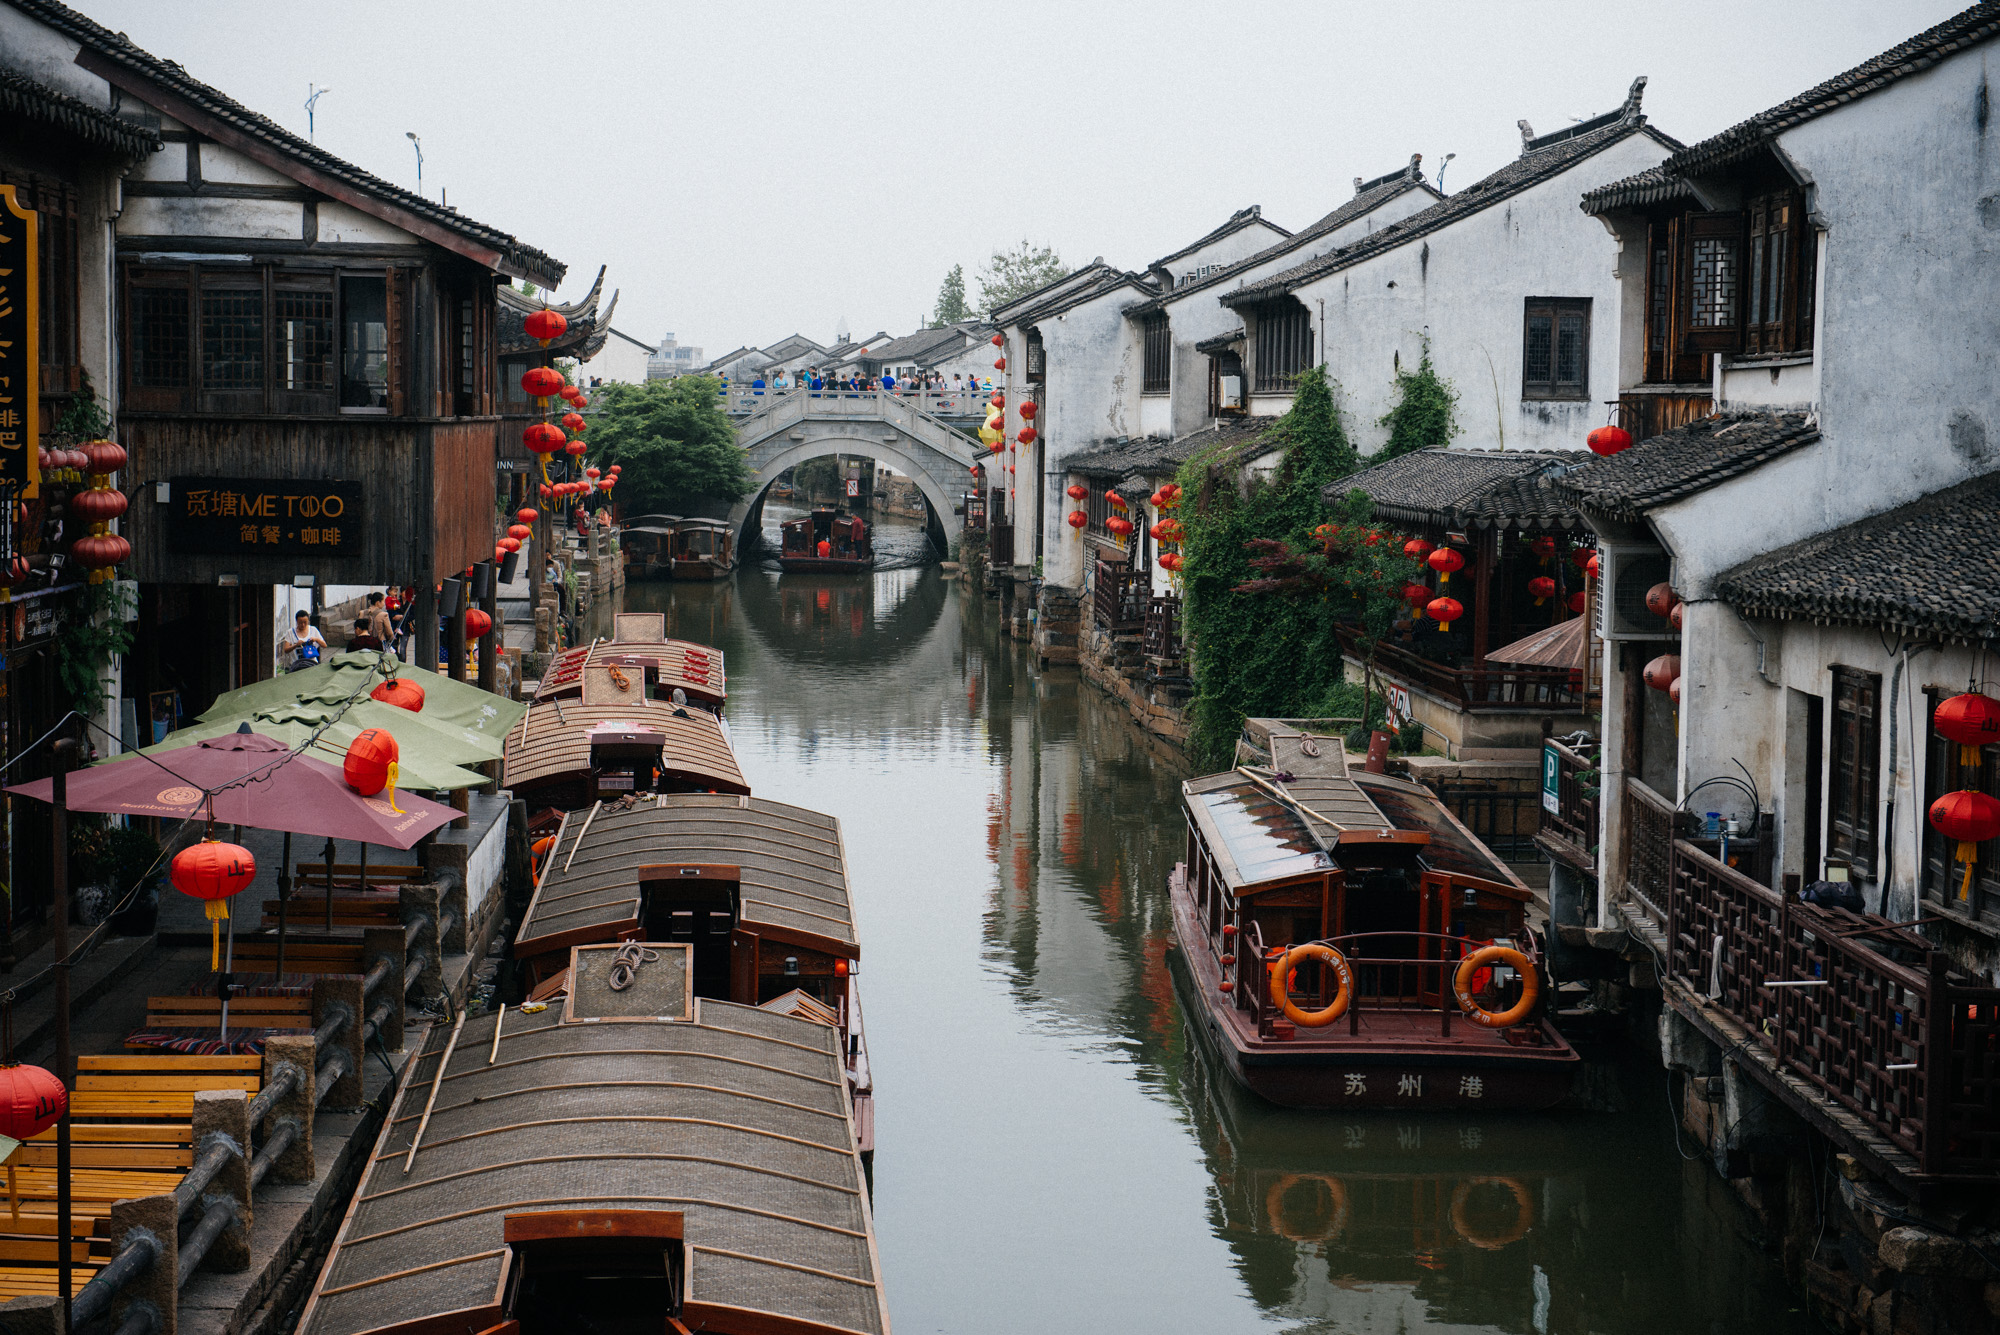 This point of Shantang Street is Suzhou's postcard image. To the sides are restaurants, which I found overpriced and not very good on any standard. It was a rainy day, the only one I had in the city, so I chose not to ride the boat.